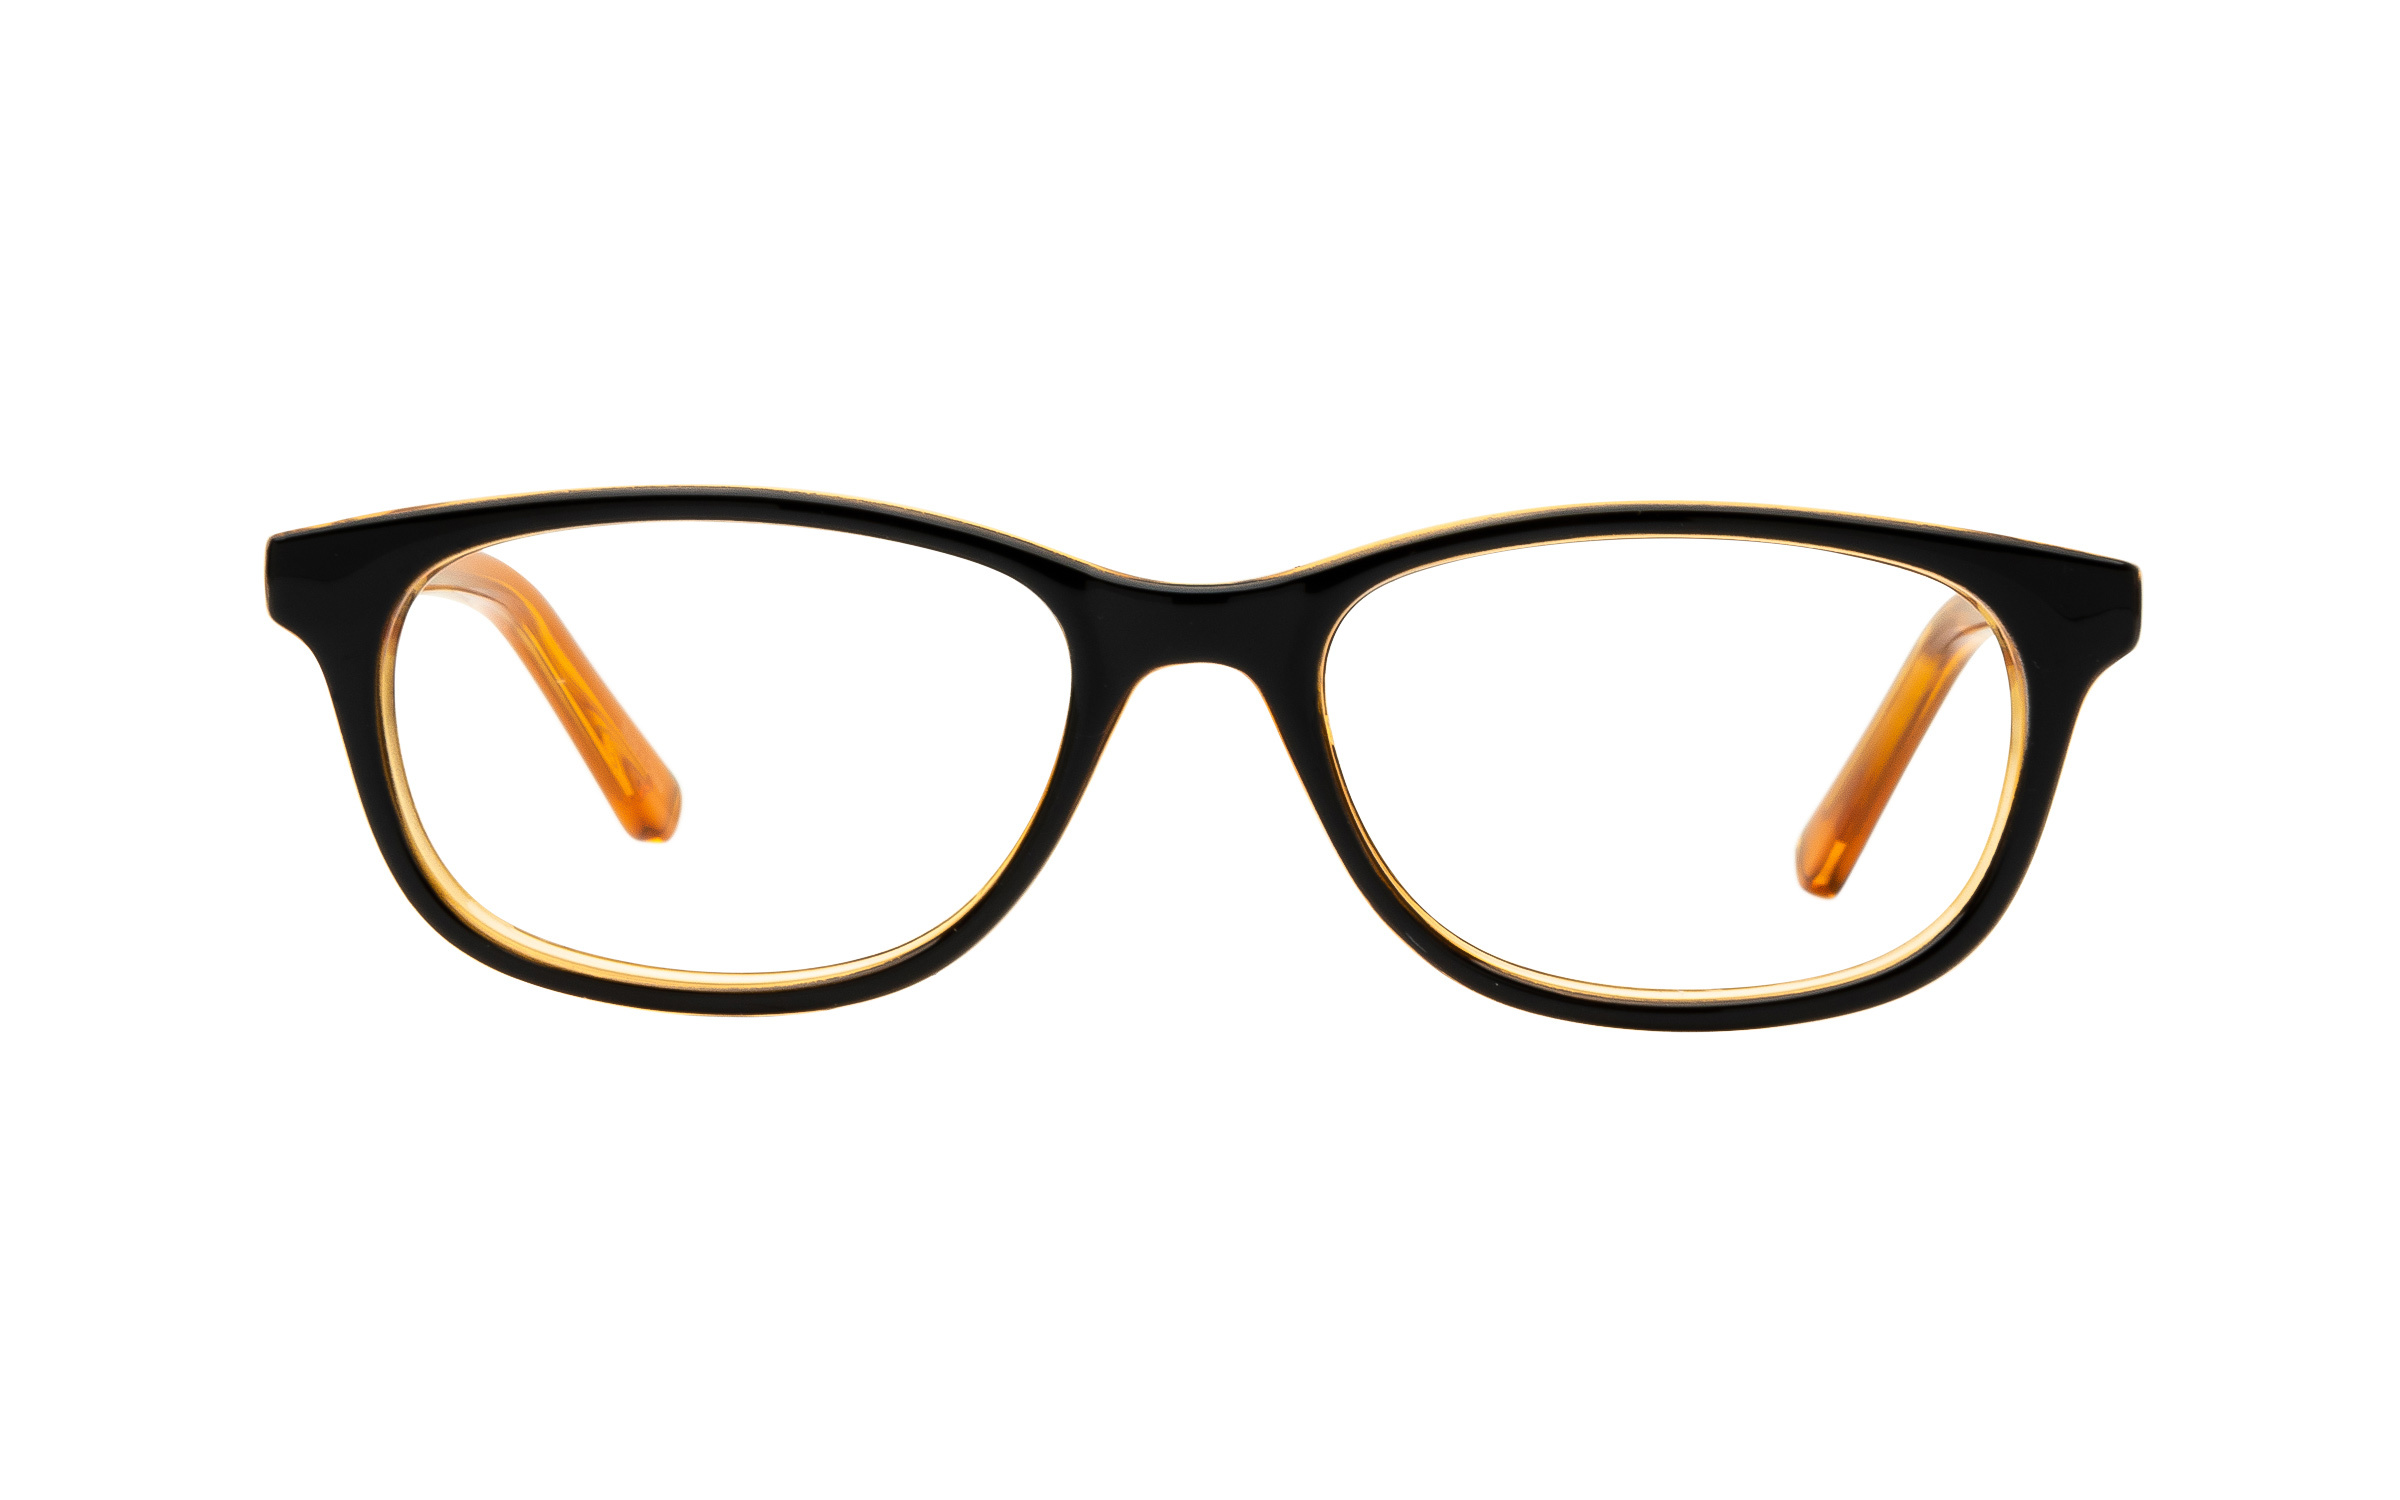 ClearlyBasics Clearly Junior Fawn KID010 C02 (47) Eyeglasses and Frame in Amber Black/Orange | Plastic - Online Coastal